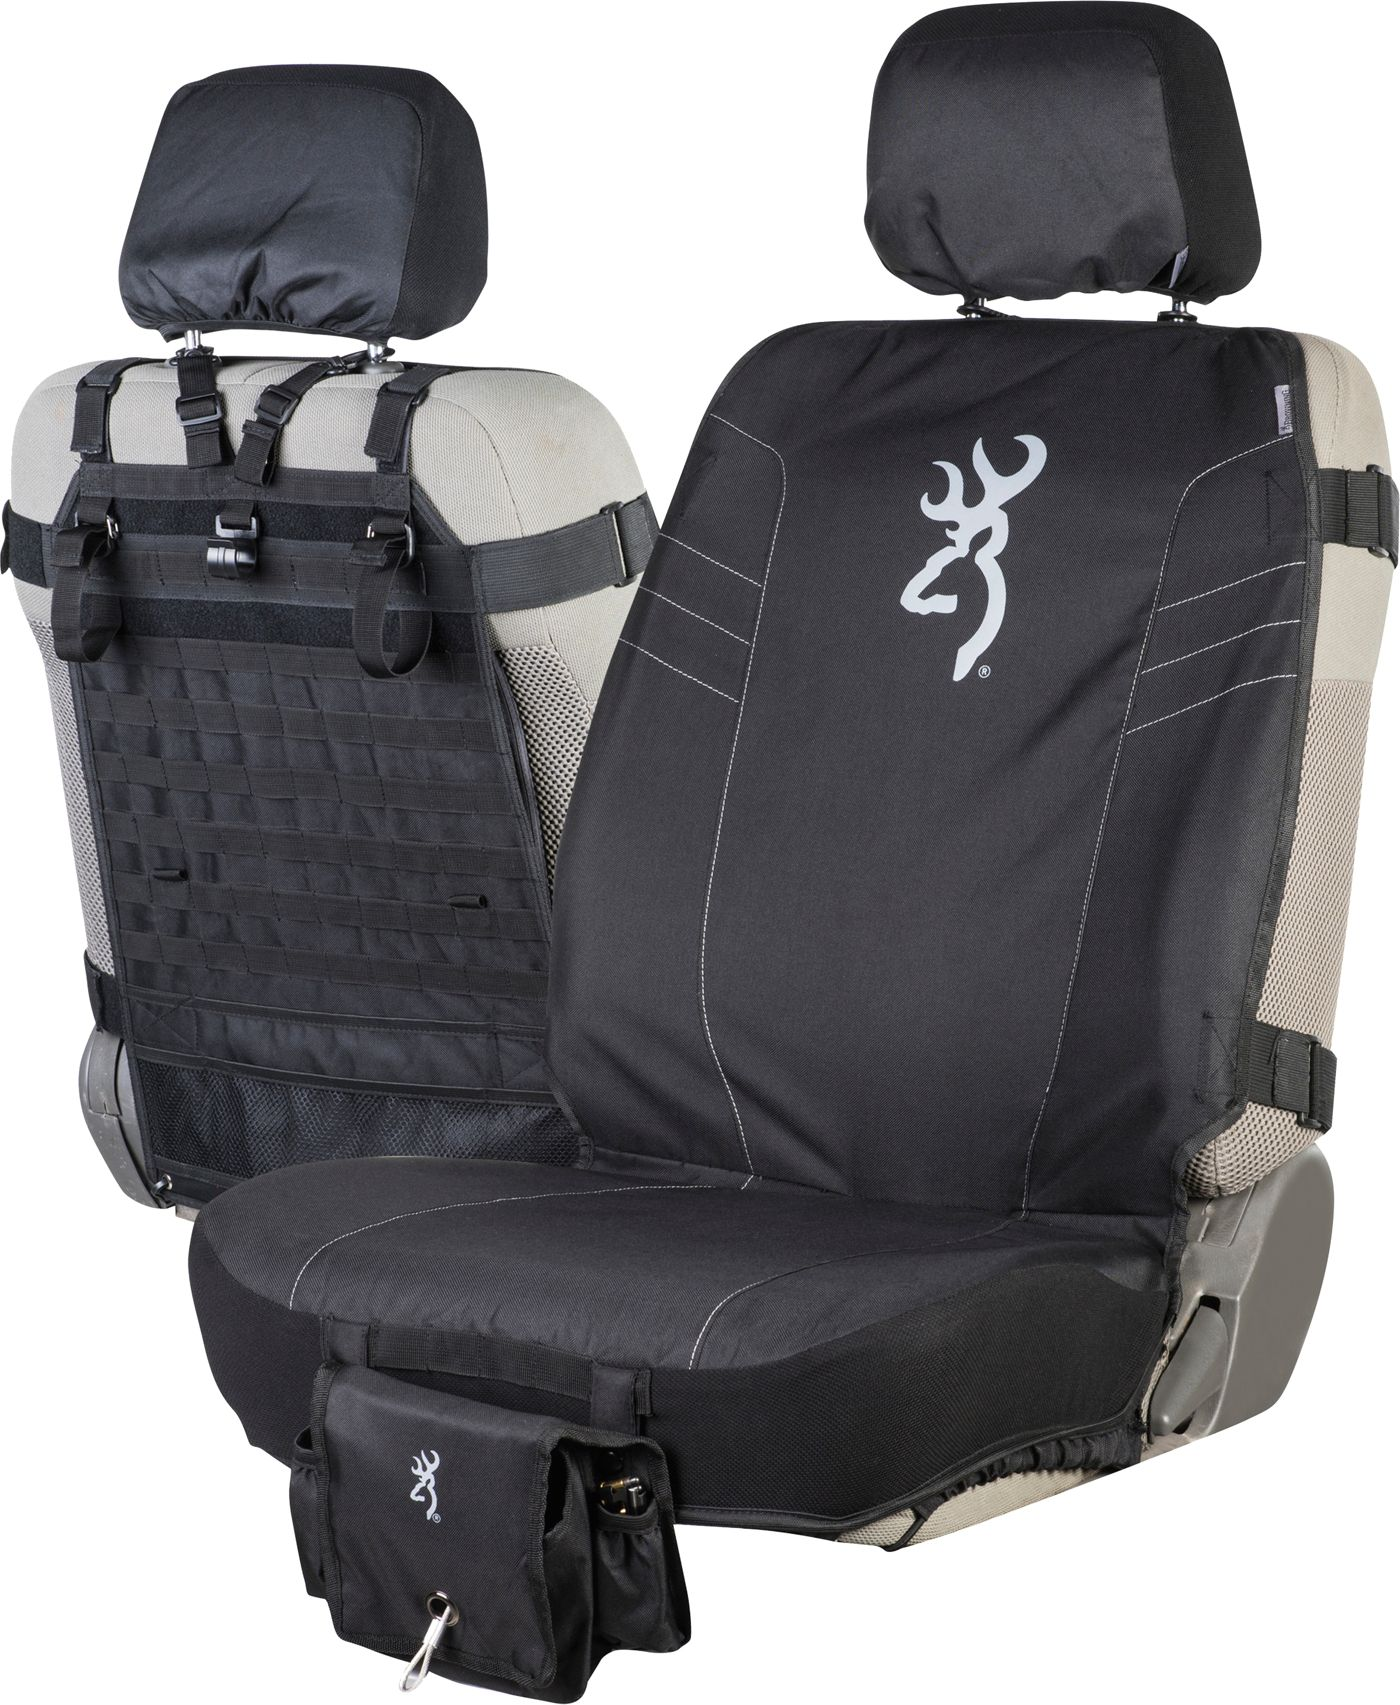 Browning Tactical 2.0 Seat Cover